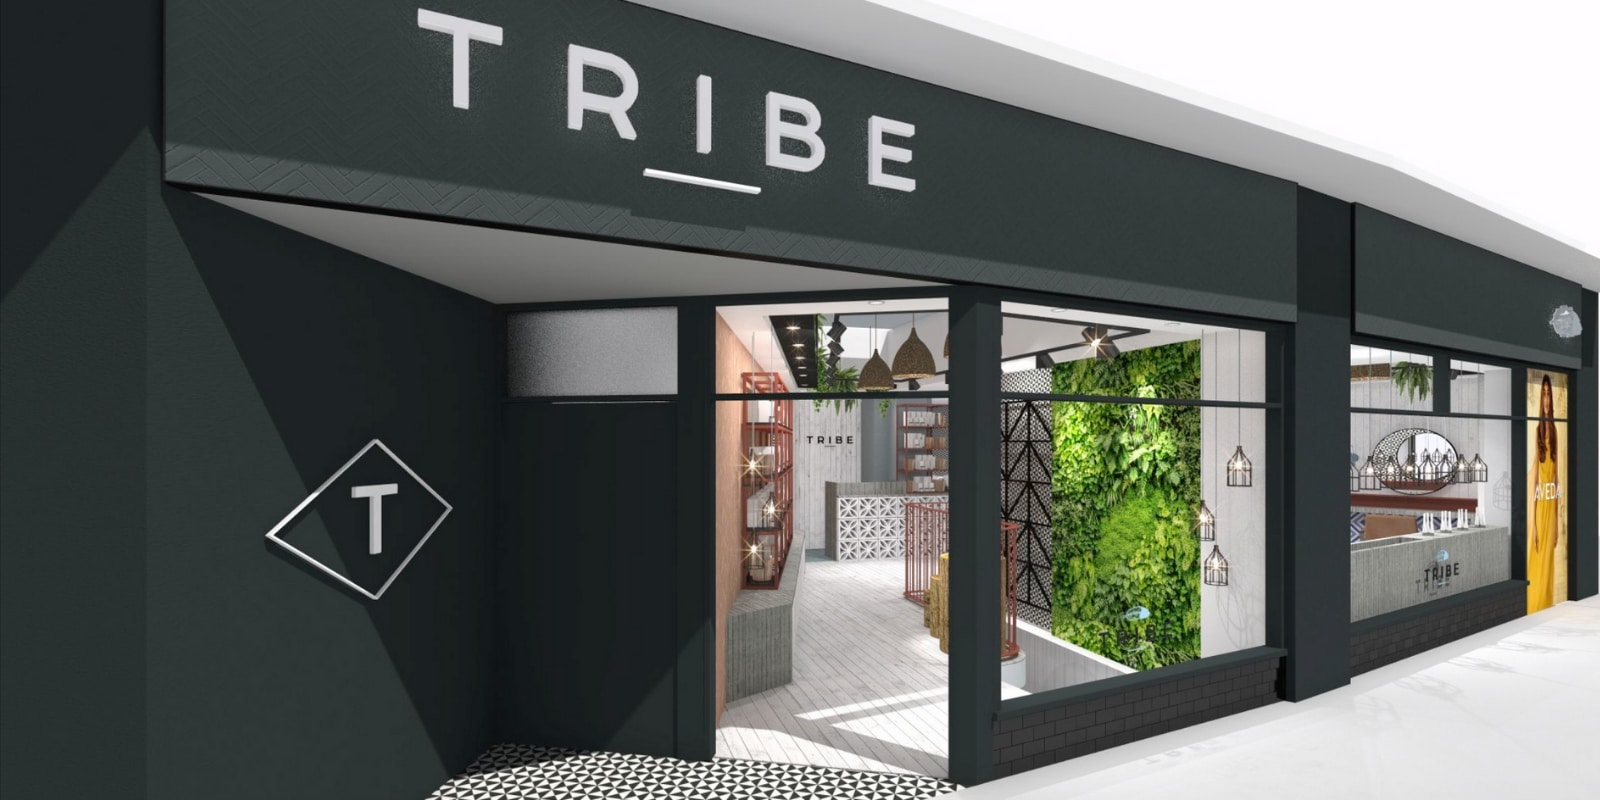 Introducing Tribe Clapham